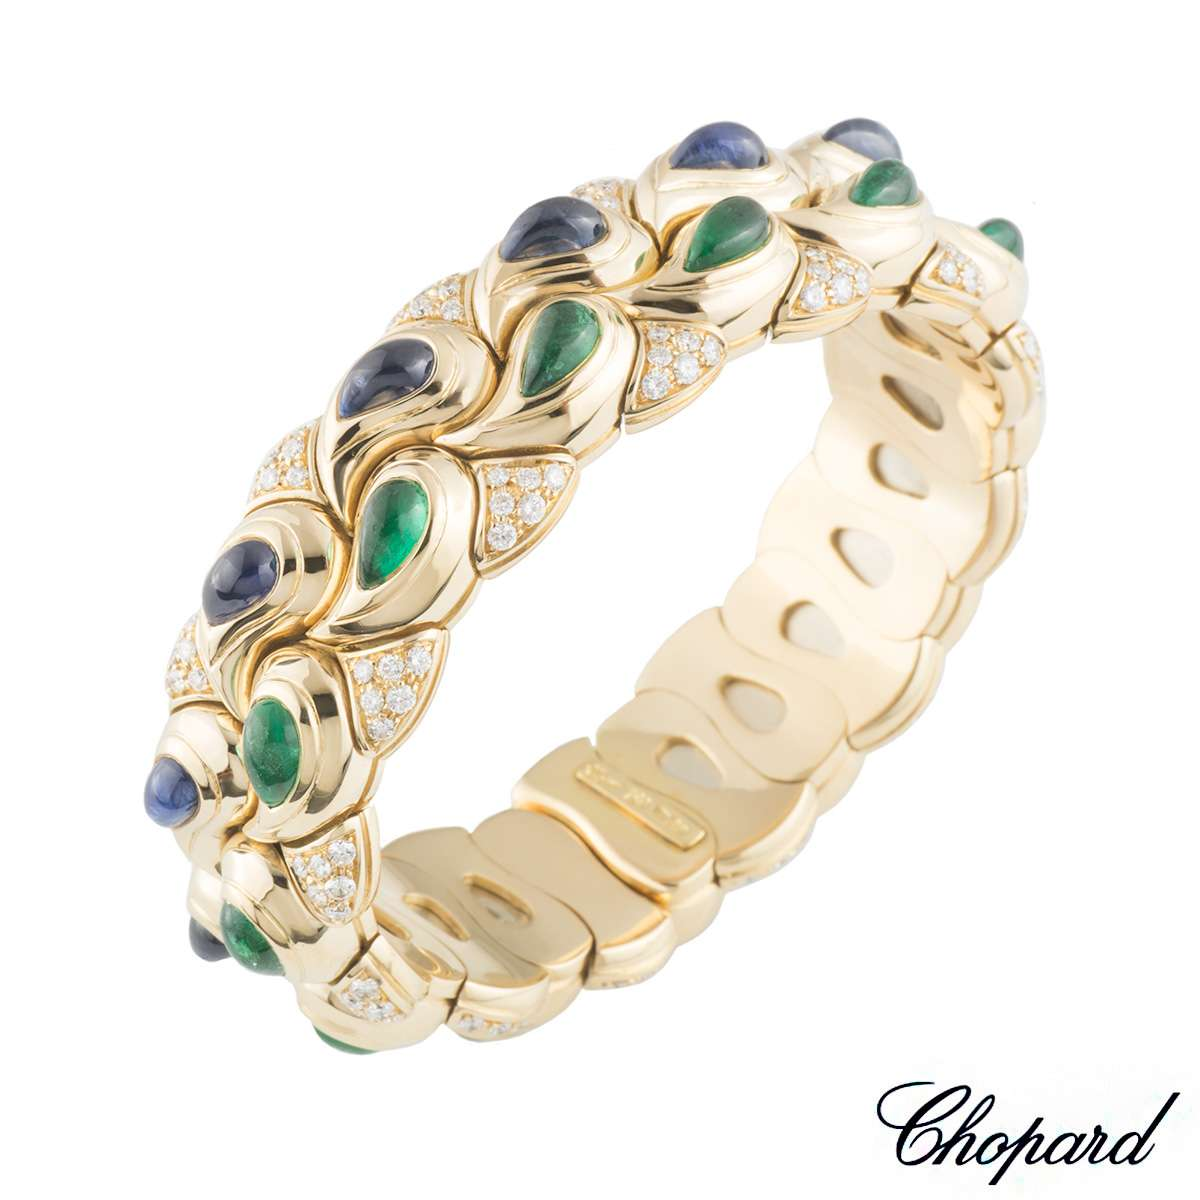 Chopard Diamond, Emerald and Sapphire Casmir Bangle